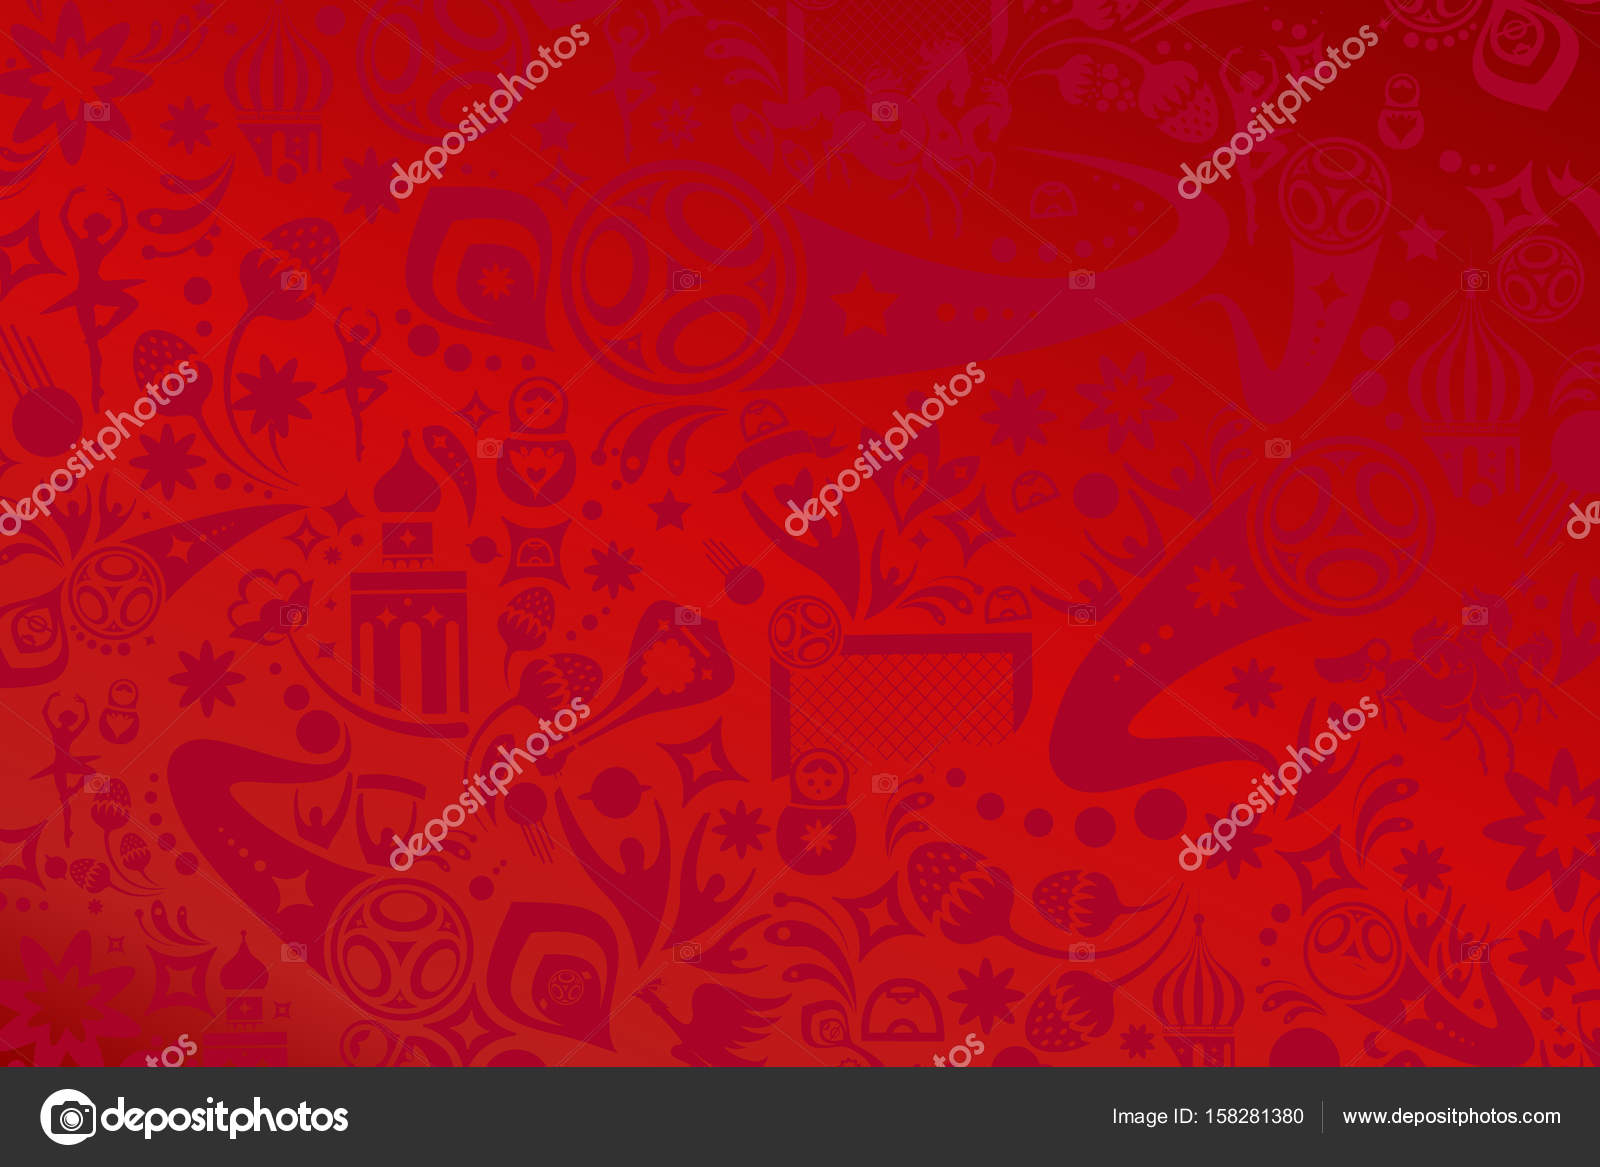 Football 2017 18 russian wallpaper football world cup background football 2017 18 russian wallpaper football world cup background illustration russia red soccer world tournament vector background image voltagebd Gallery